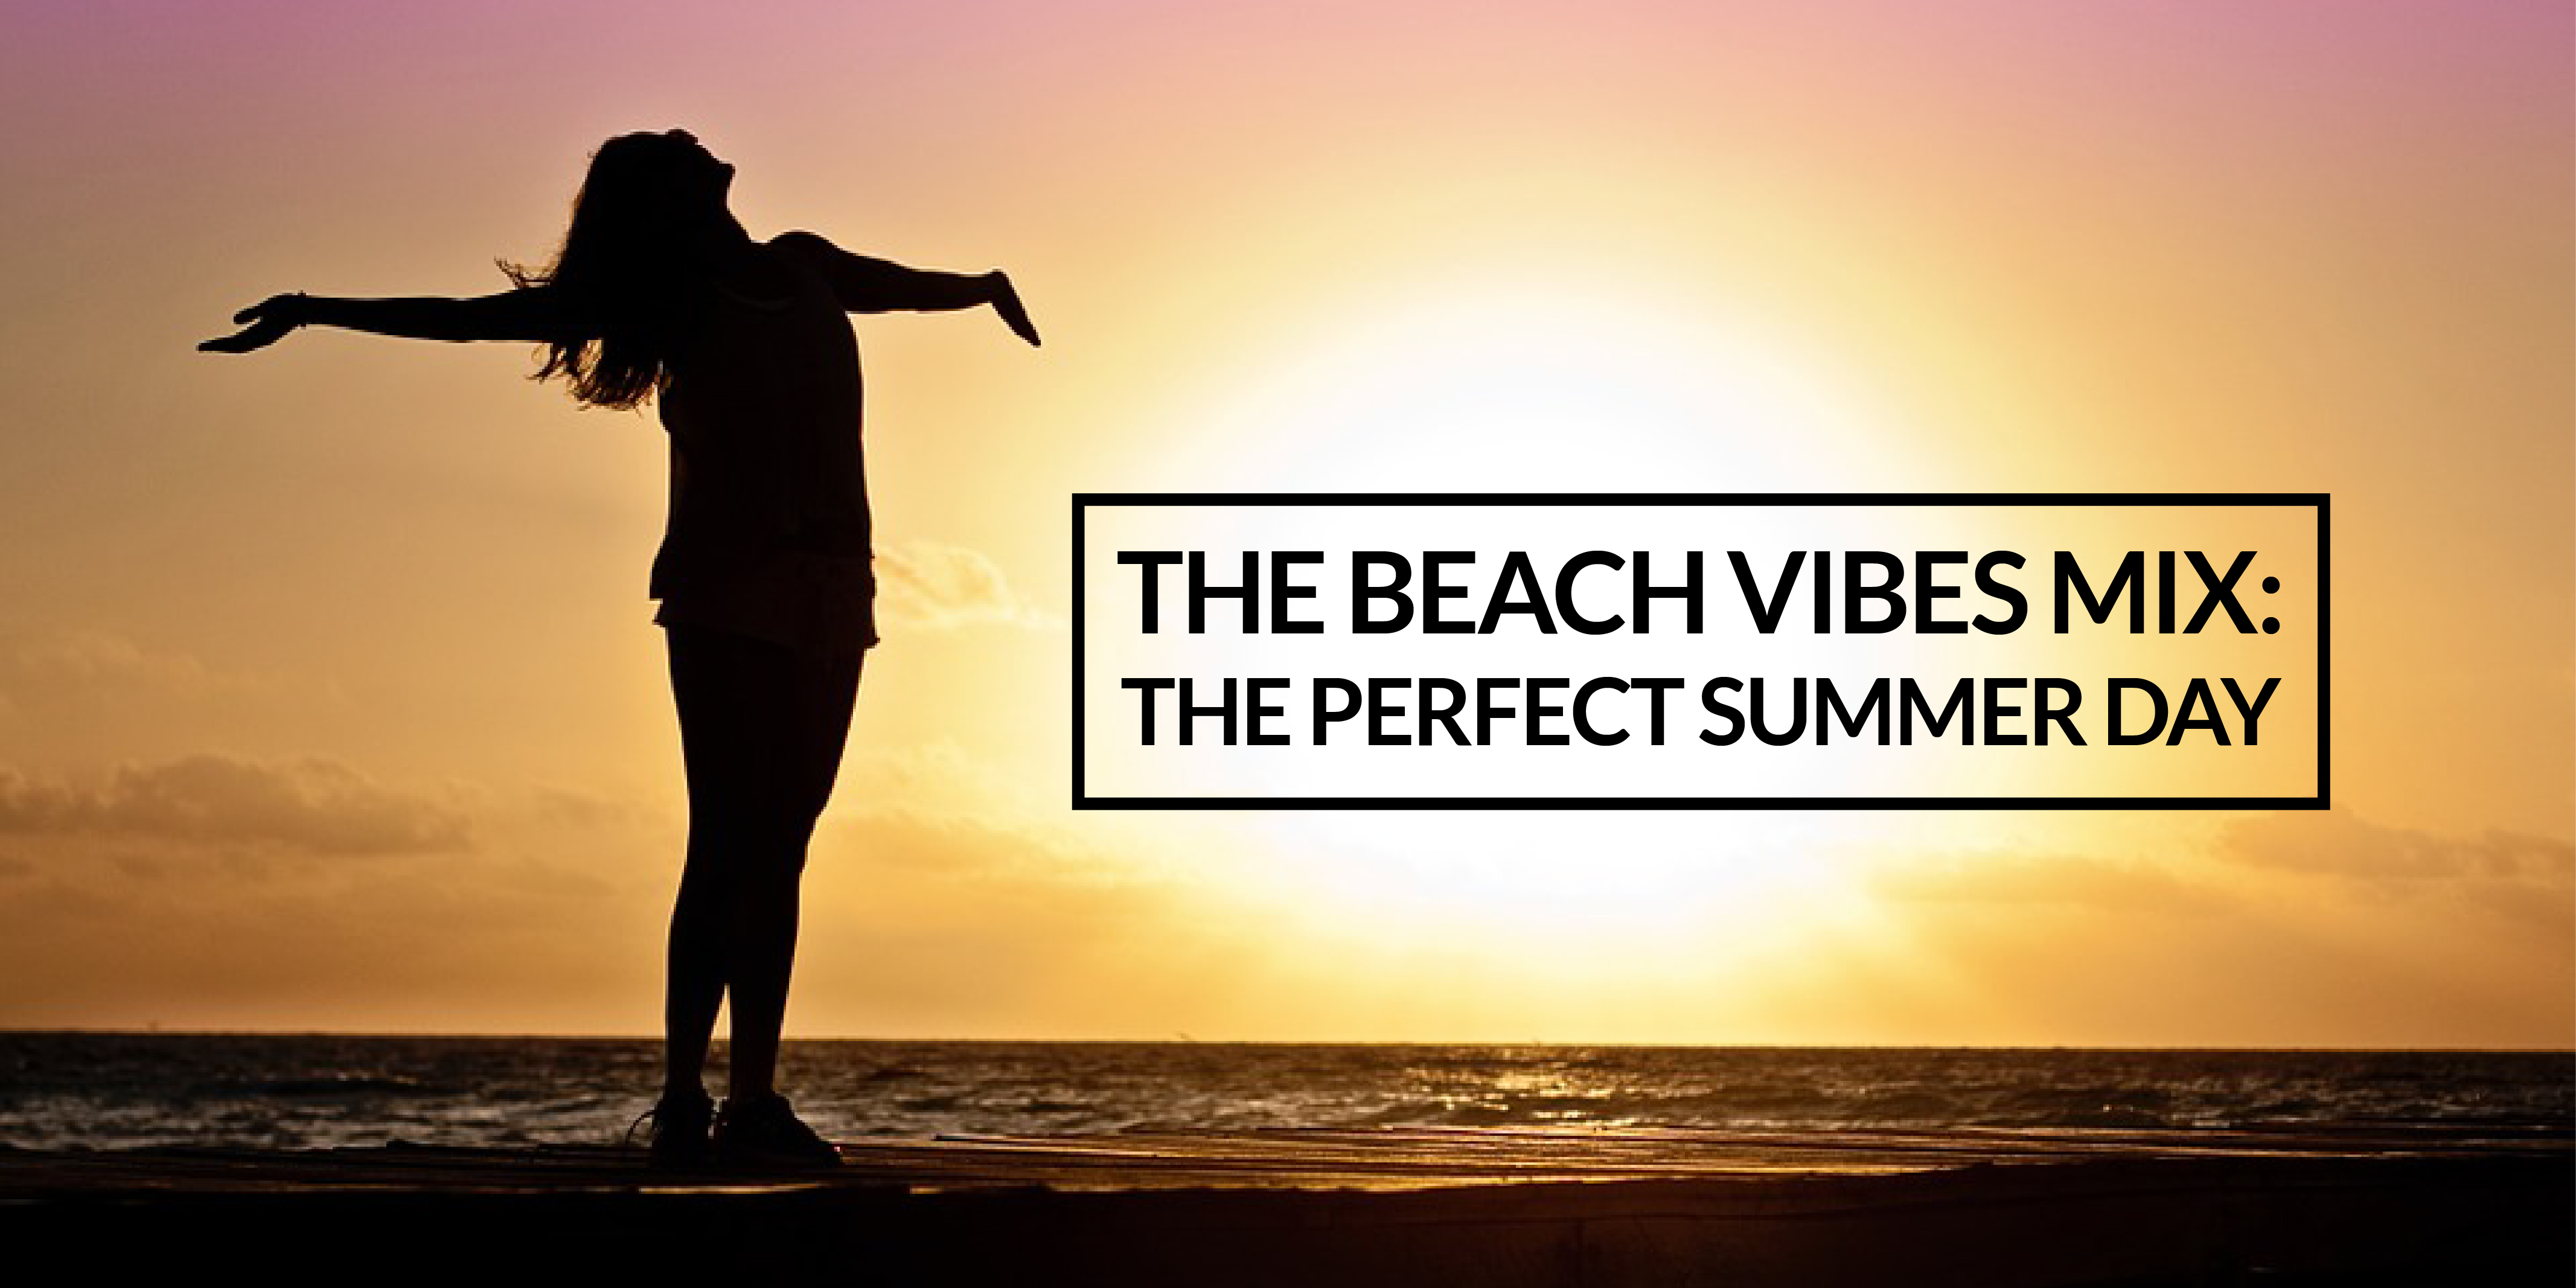 THE BEACH VIBES MIX: The Perfect Summer Day